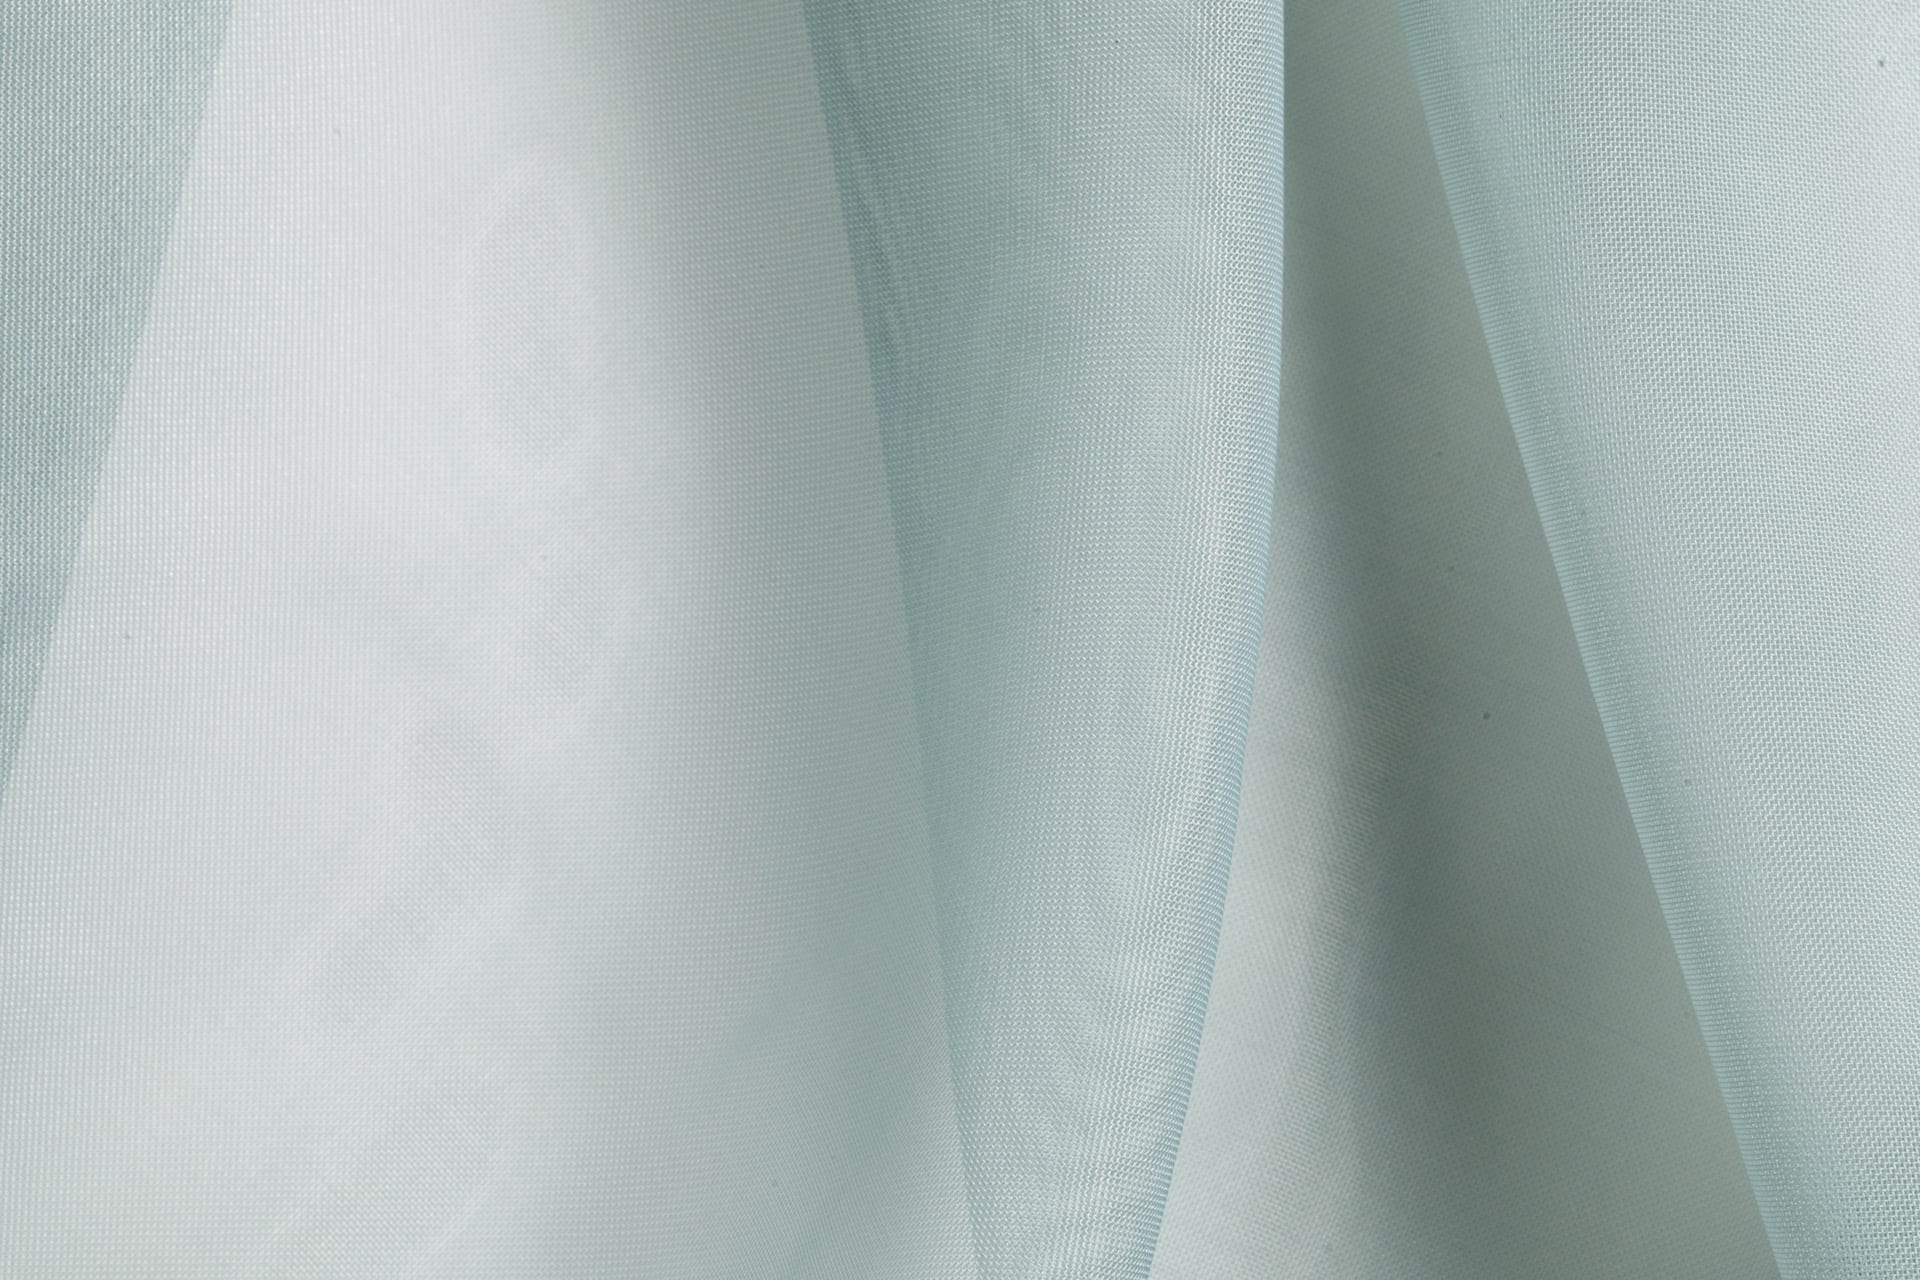 SHEER VOILE FR 0100 COOL